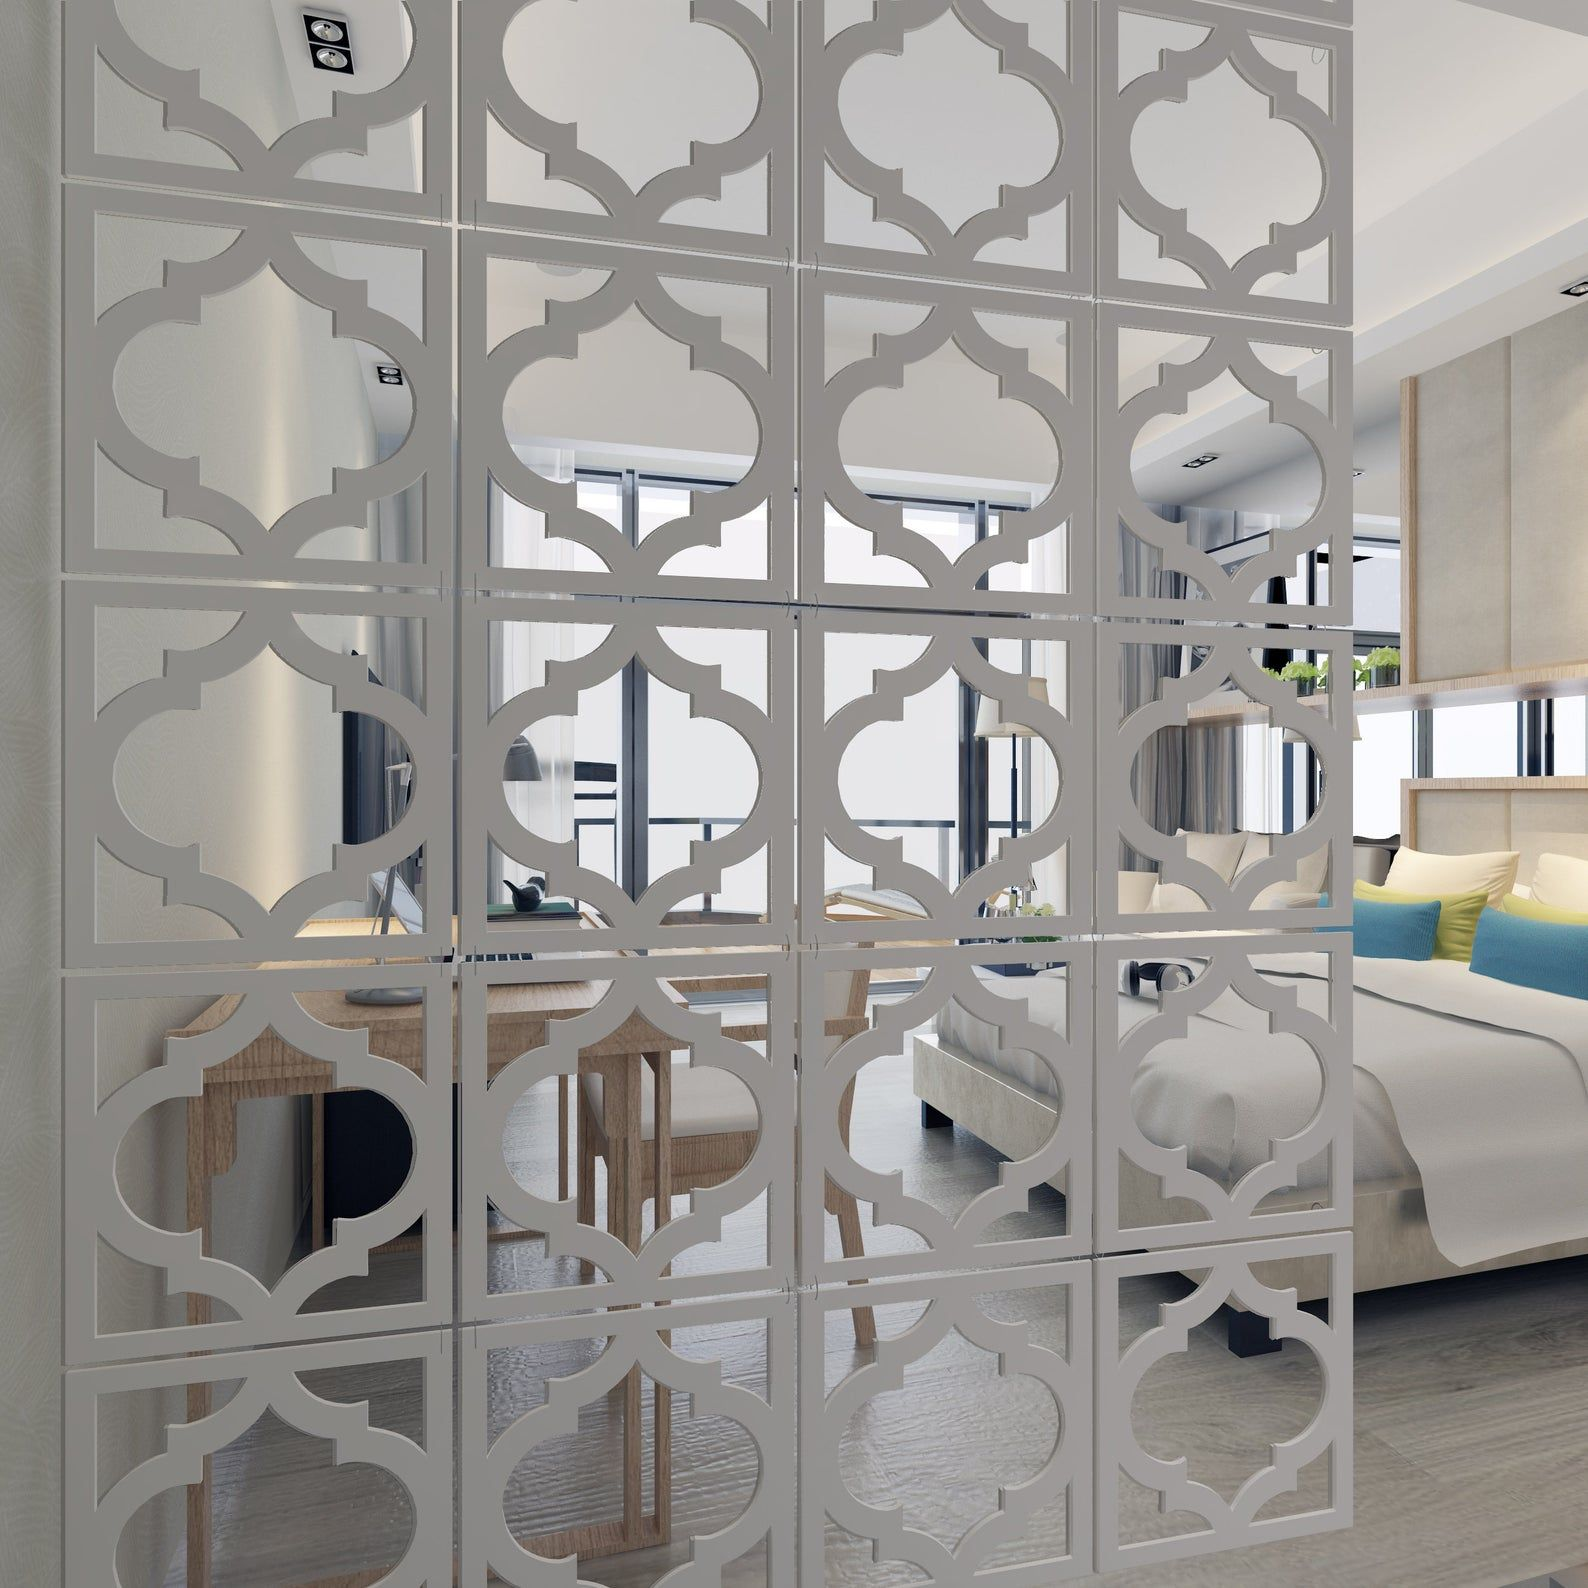 Modern Partitions Panel Screen Hanging Wall Room Privacy Etsy Modern Partition Hanging Room Dividers Walls Room My trellis room divider